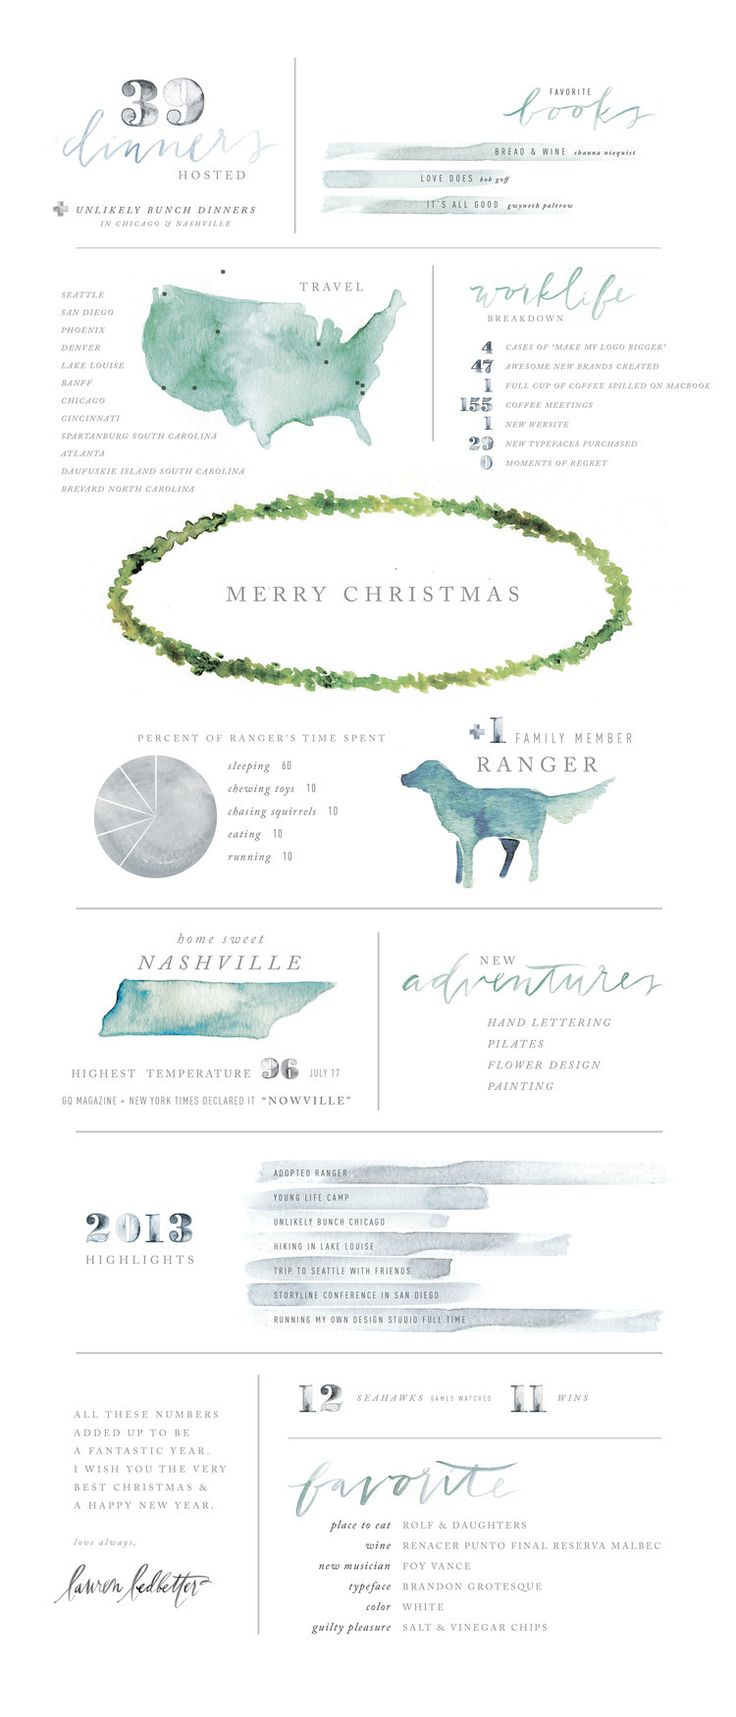 2013 Year in Review — Lauren Ledbetter Design & Styling